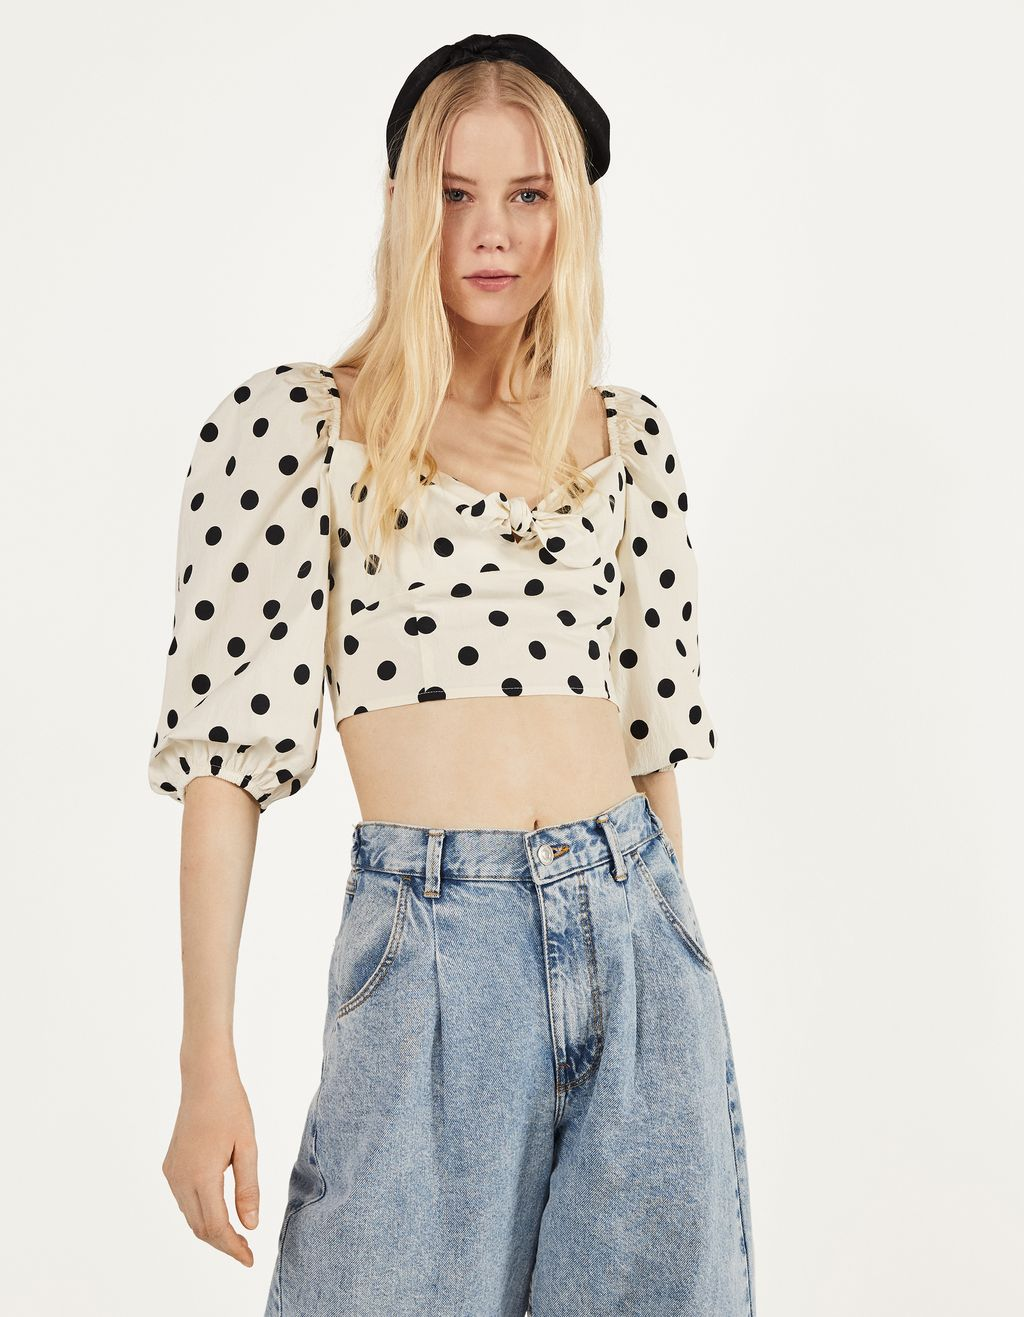 Polka dot blouse with bow detail